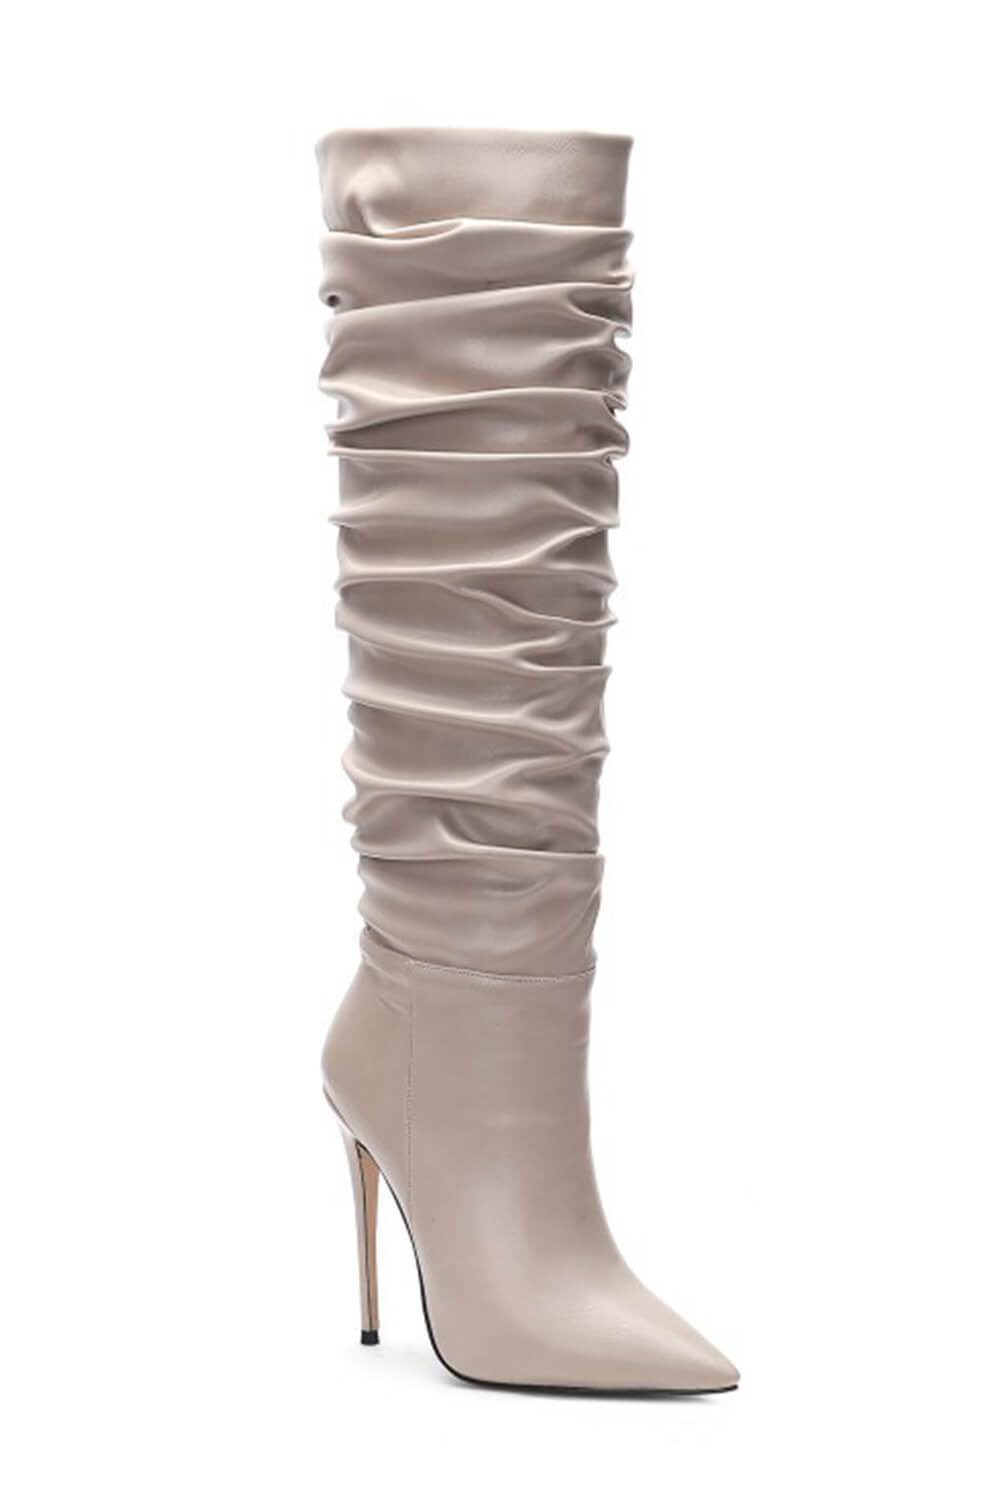 Beige Ruched Stiletto Knee High Boots (4110248312891)